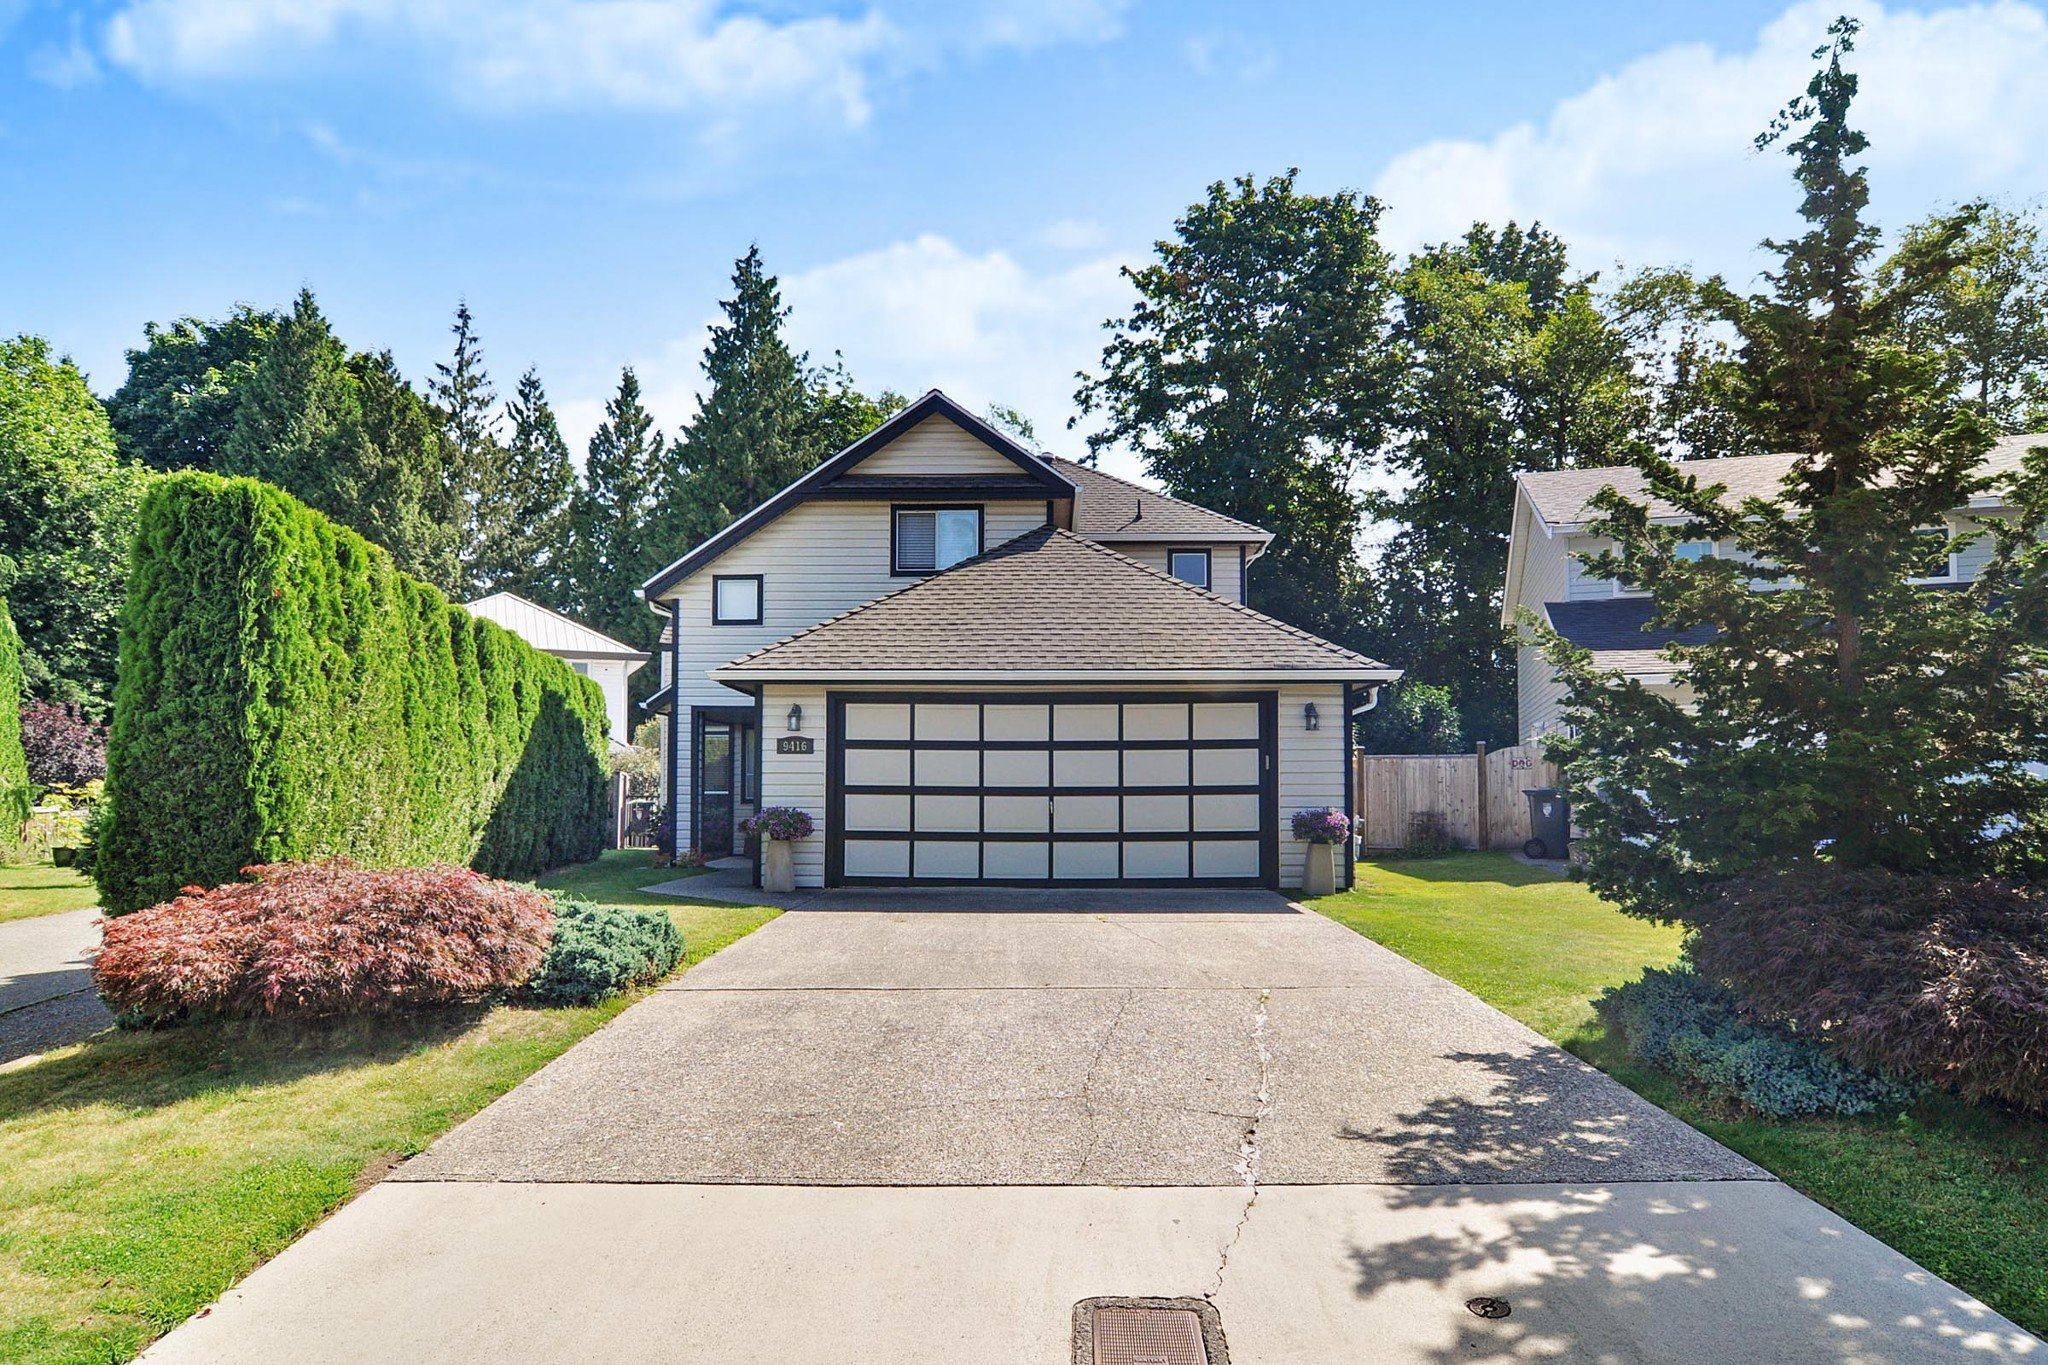 Main Photo: 9416 205B Street in Langley: Walnut Grove House for sale : MLS®# R2391481